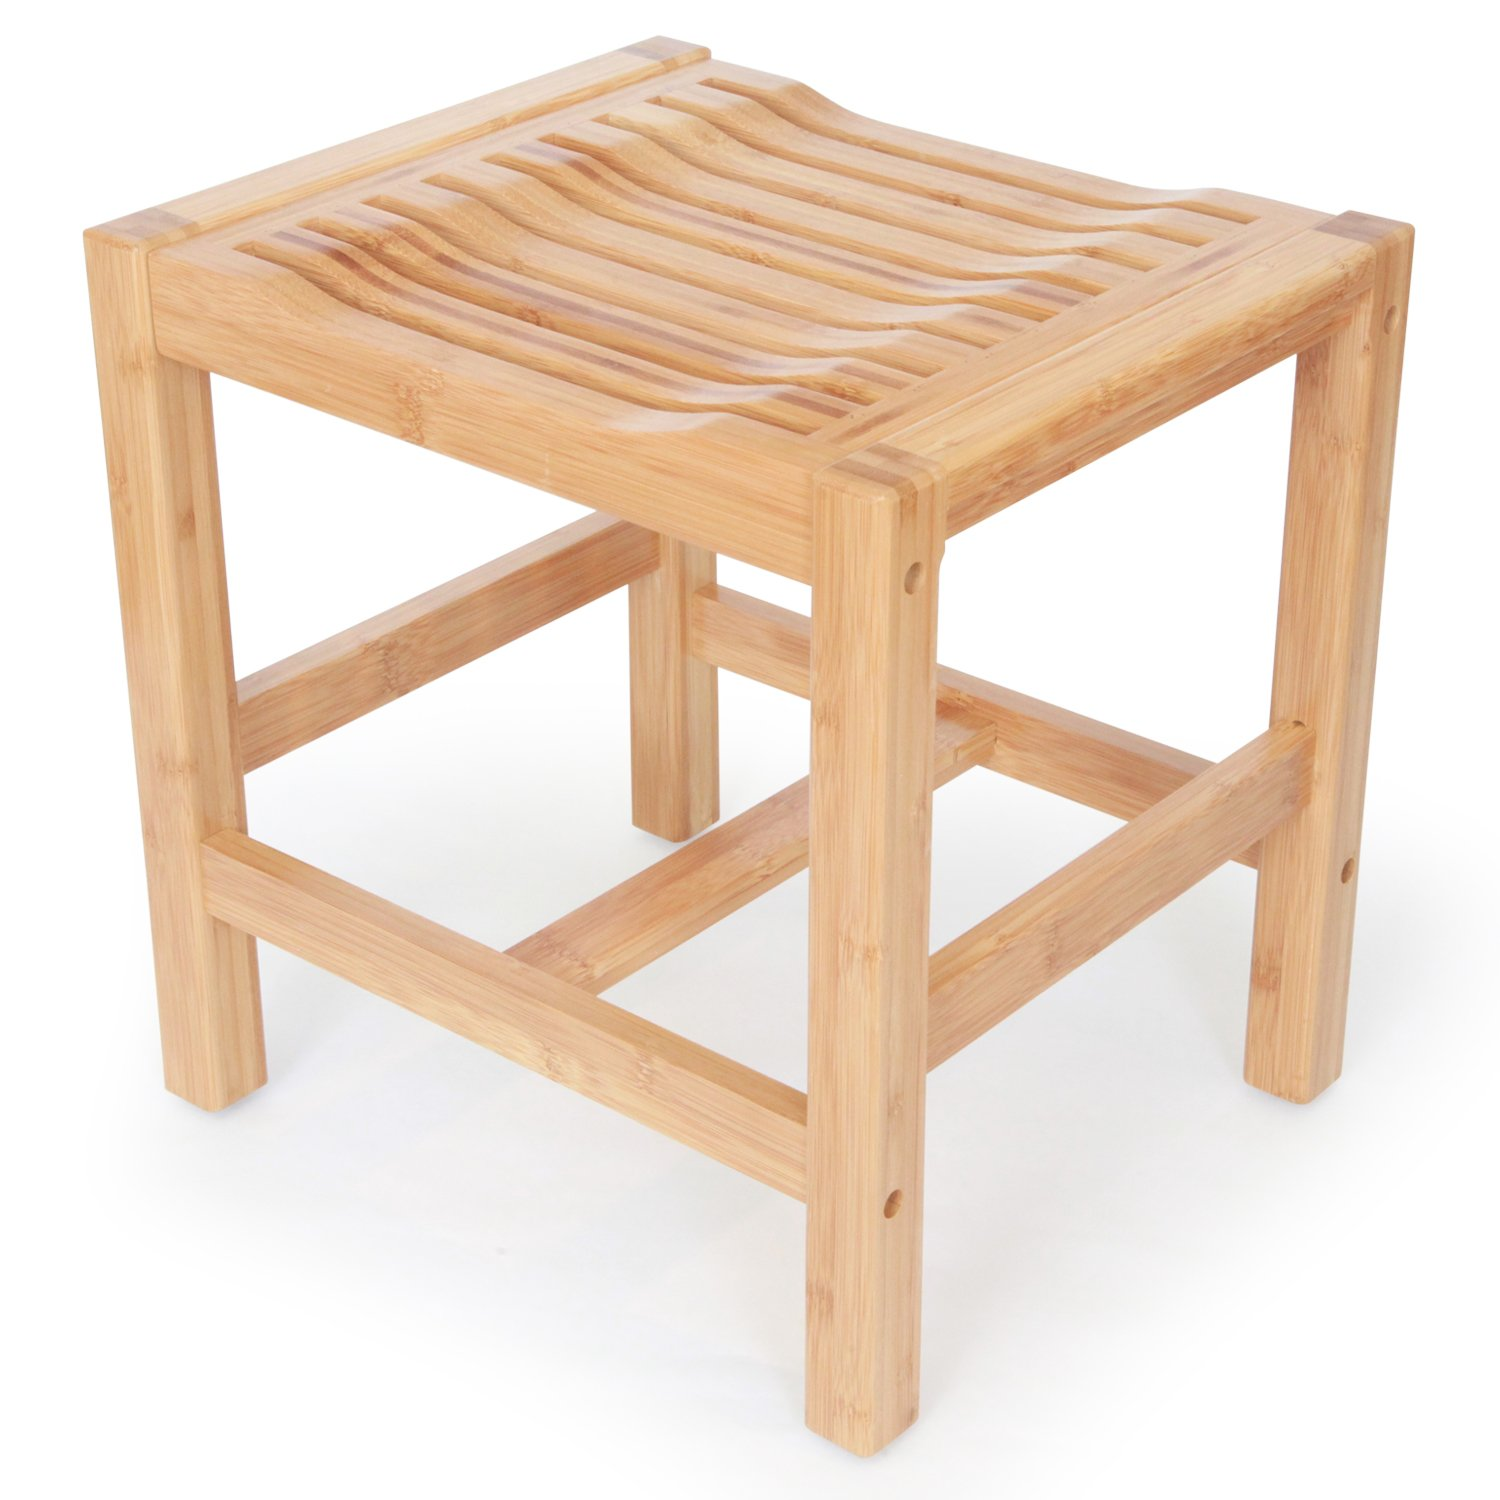 CDM product ToiletTree Products Deluxe 100% Wooden Natural Bamboo Shower and Bath Seat Bench small thumbnail image